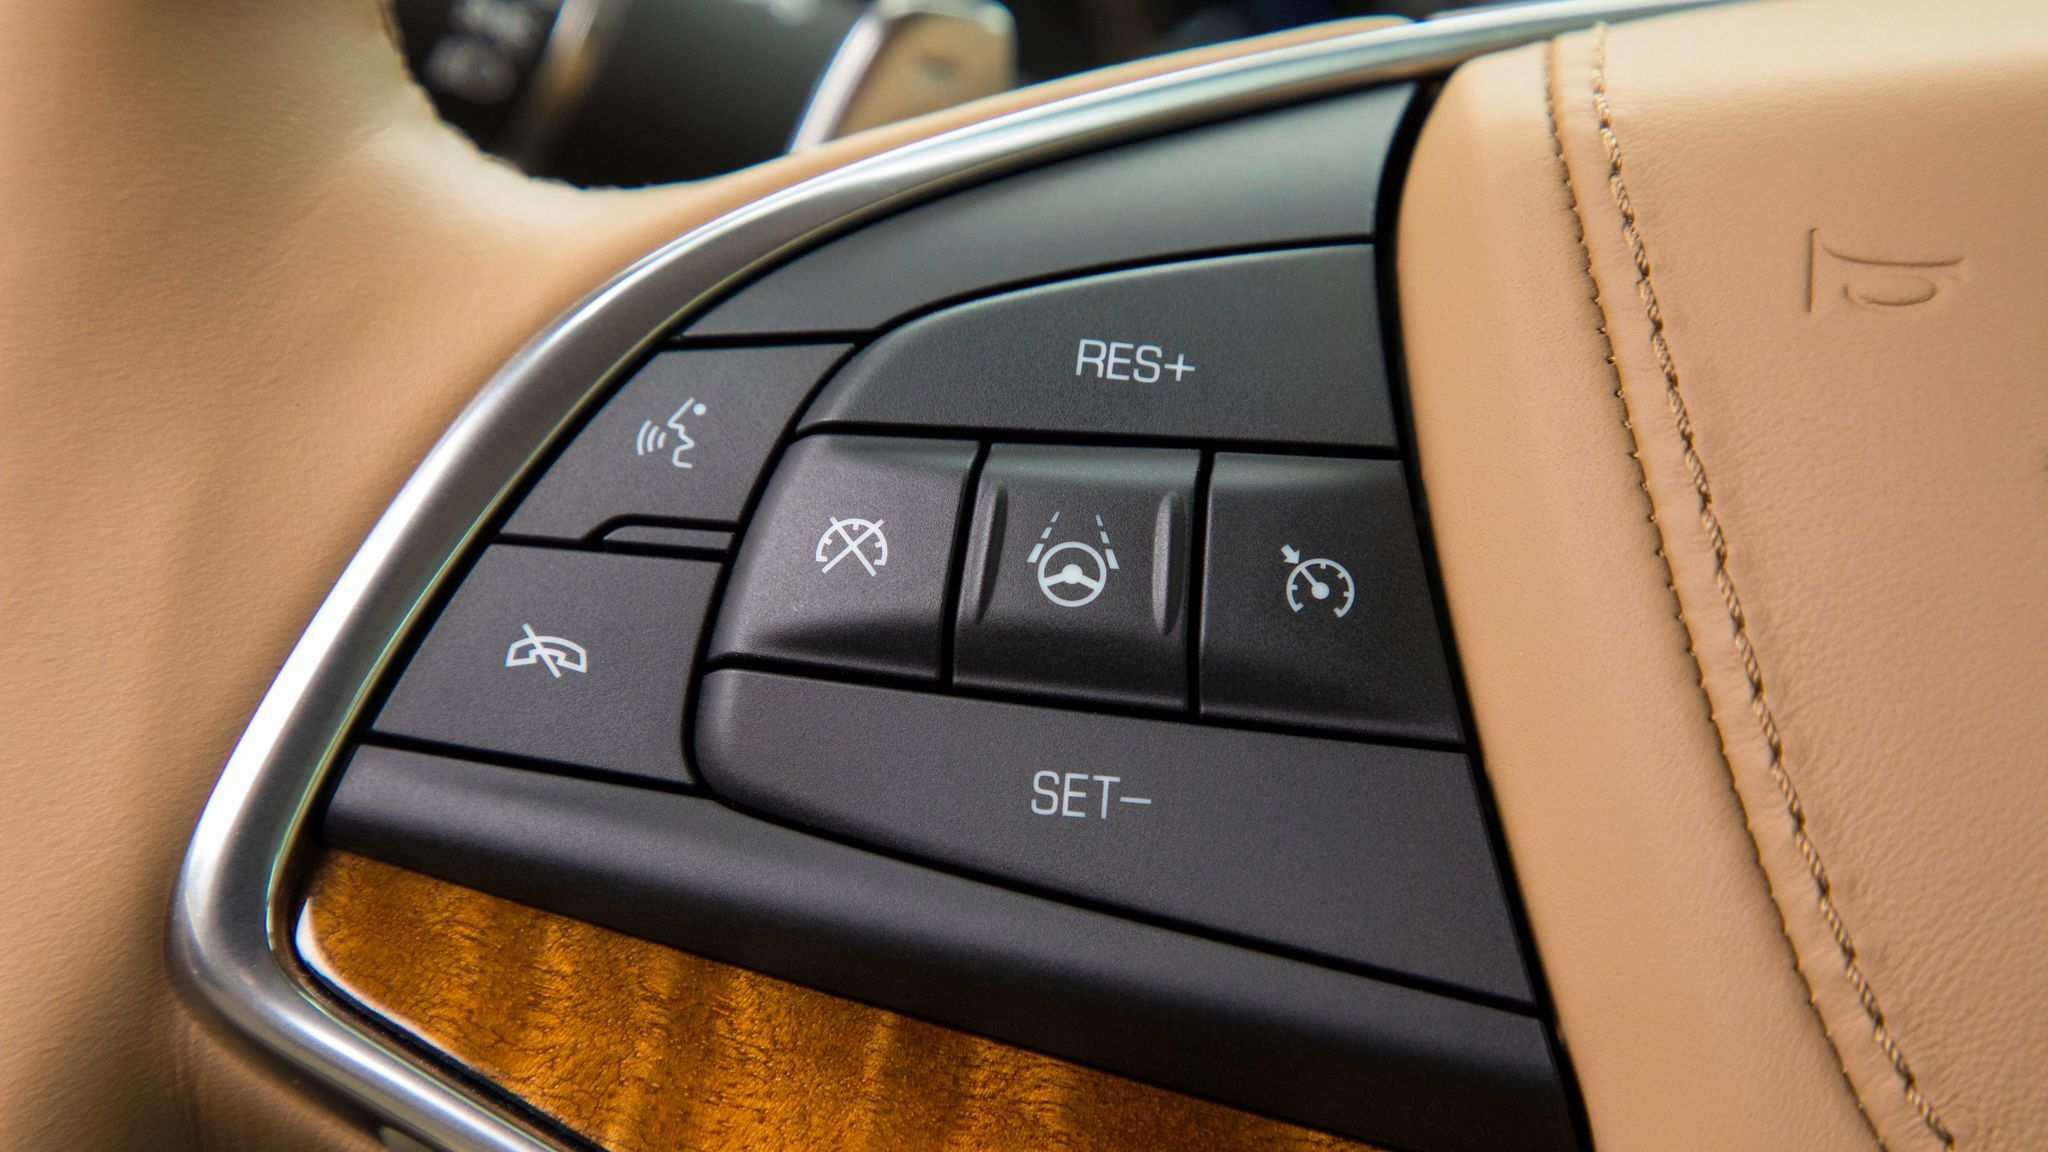 The Super Cruise on/off button on the left side of the steering wheel, center.